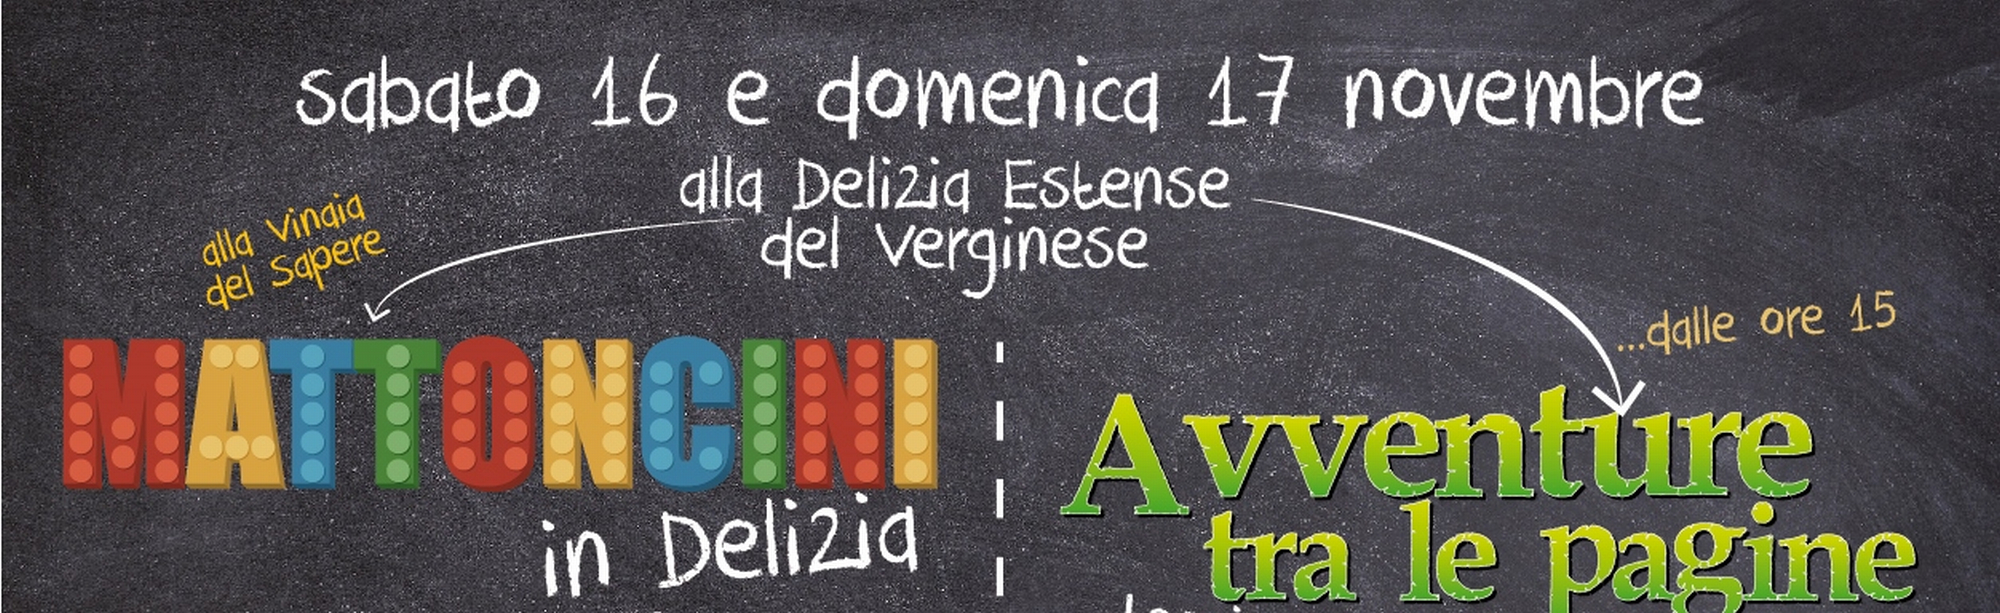 Weekend alla Delizia del Verginese